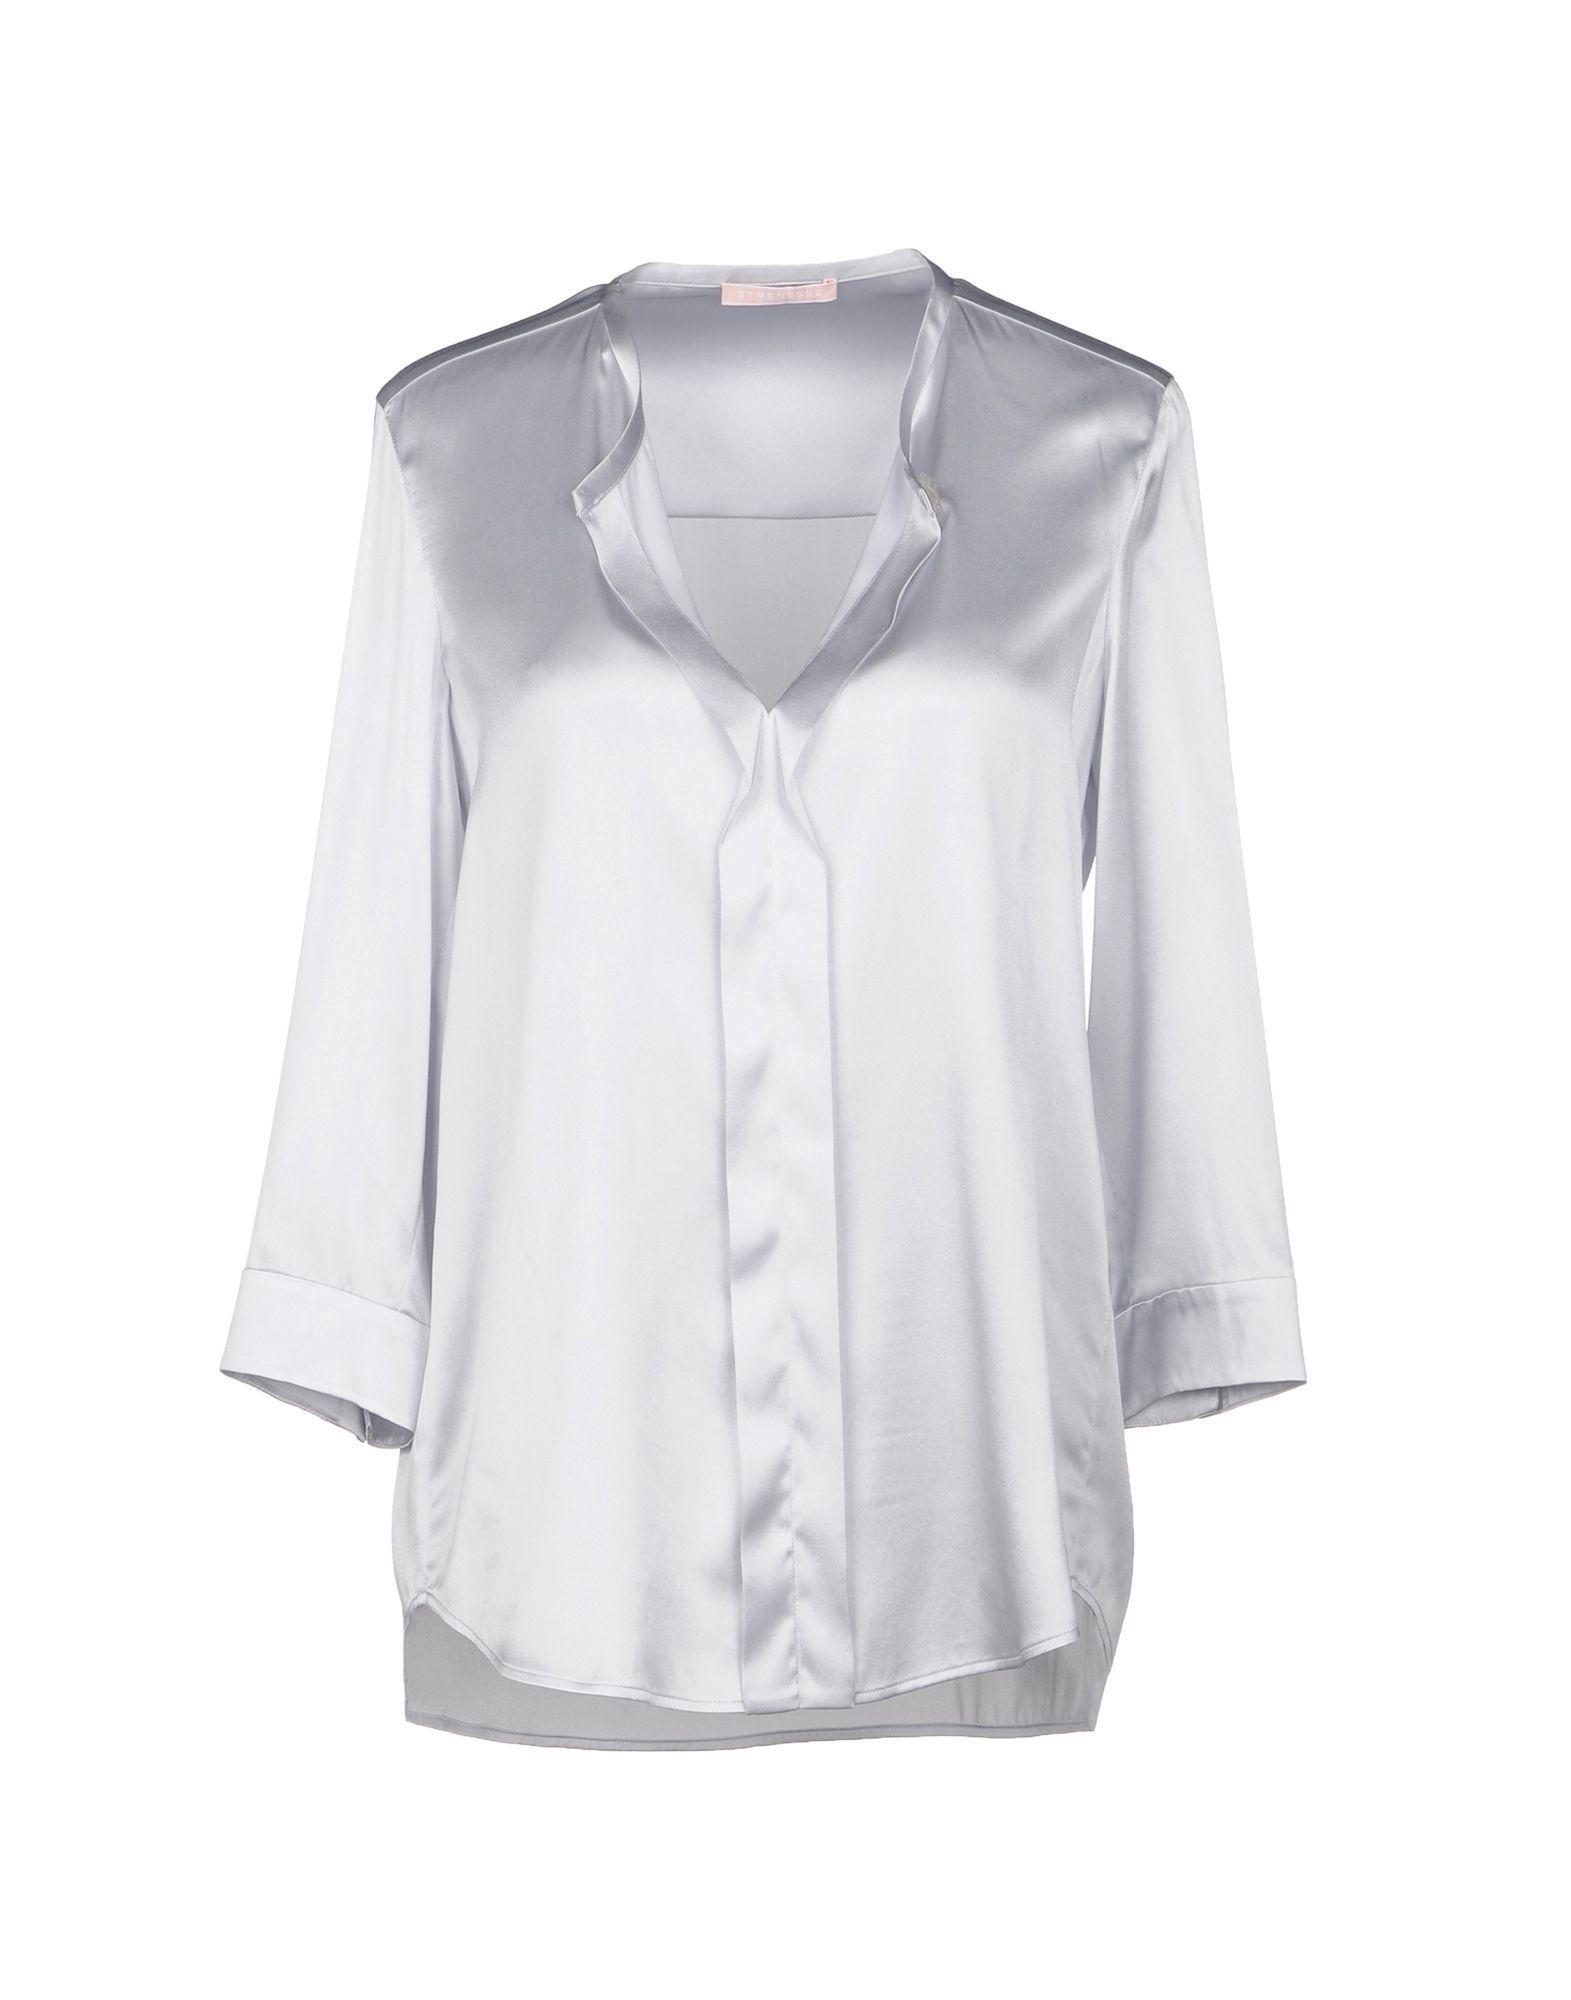 SHIRTS - Blouses Strenesse Free Shipping Pay With Visa pVQKi